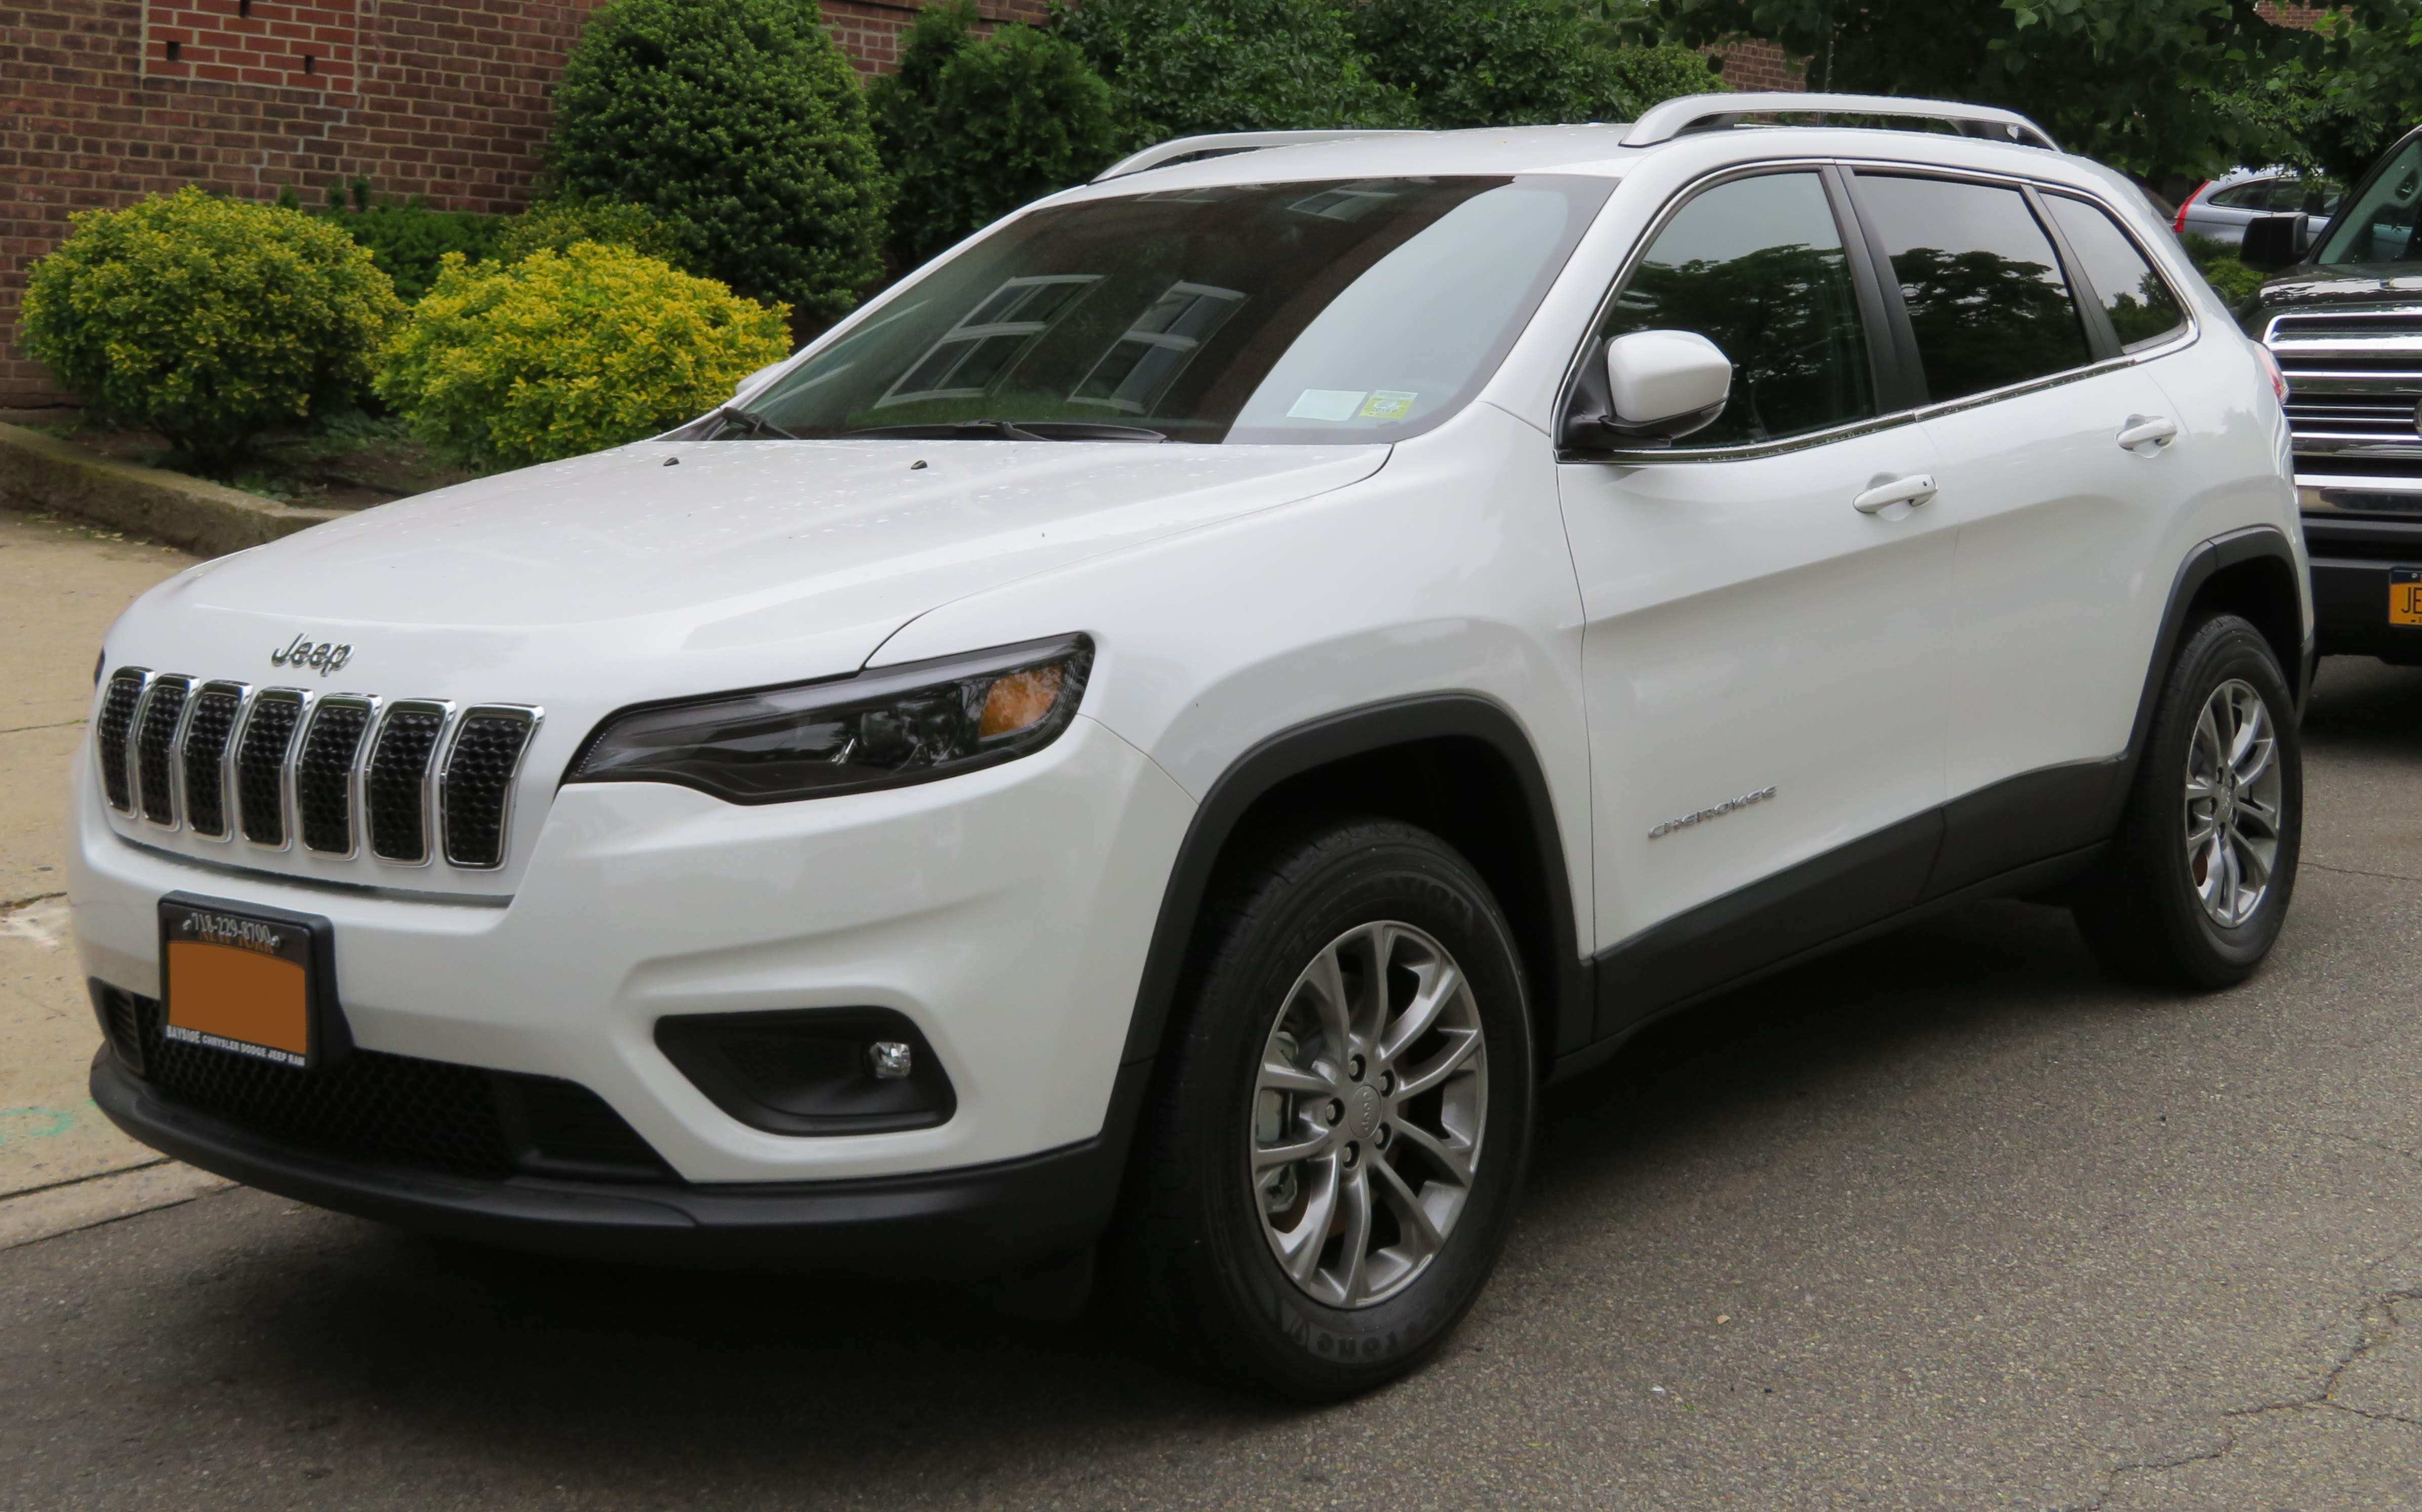 69 All New New Jeep Lineup For 2019 New Review Price And Review